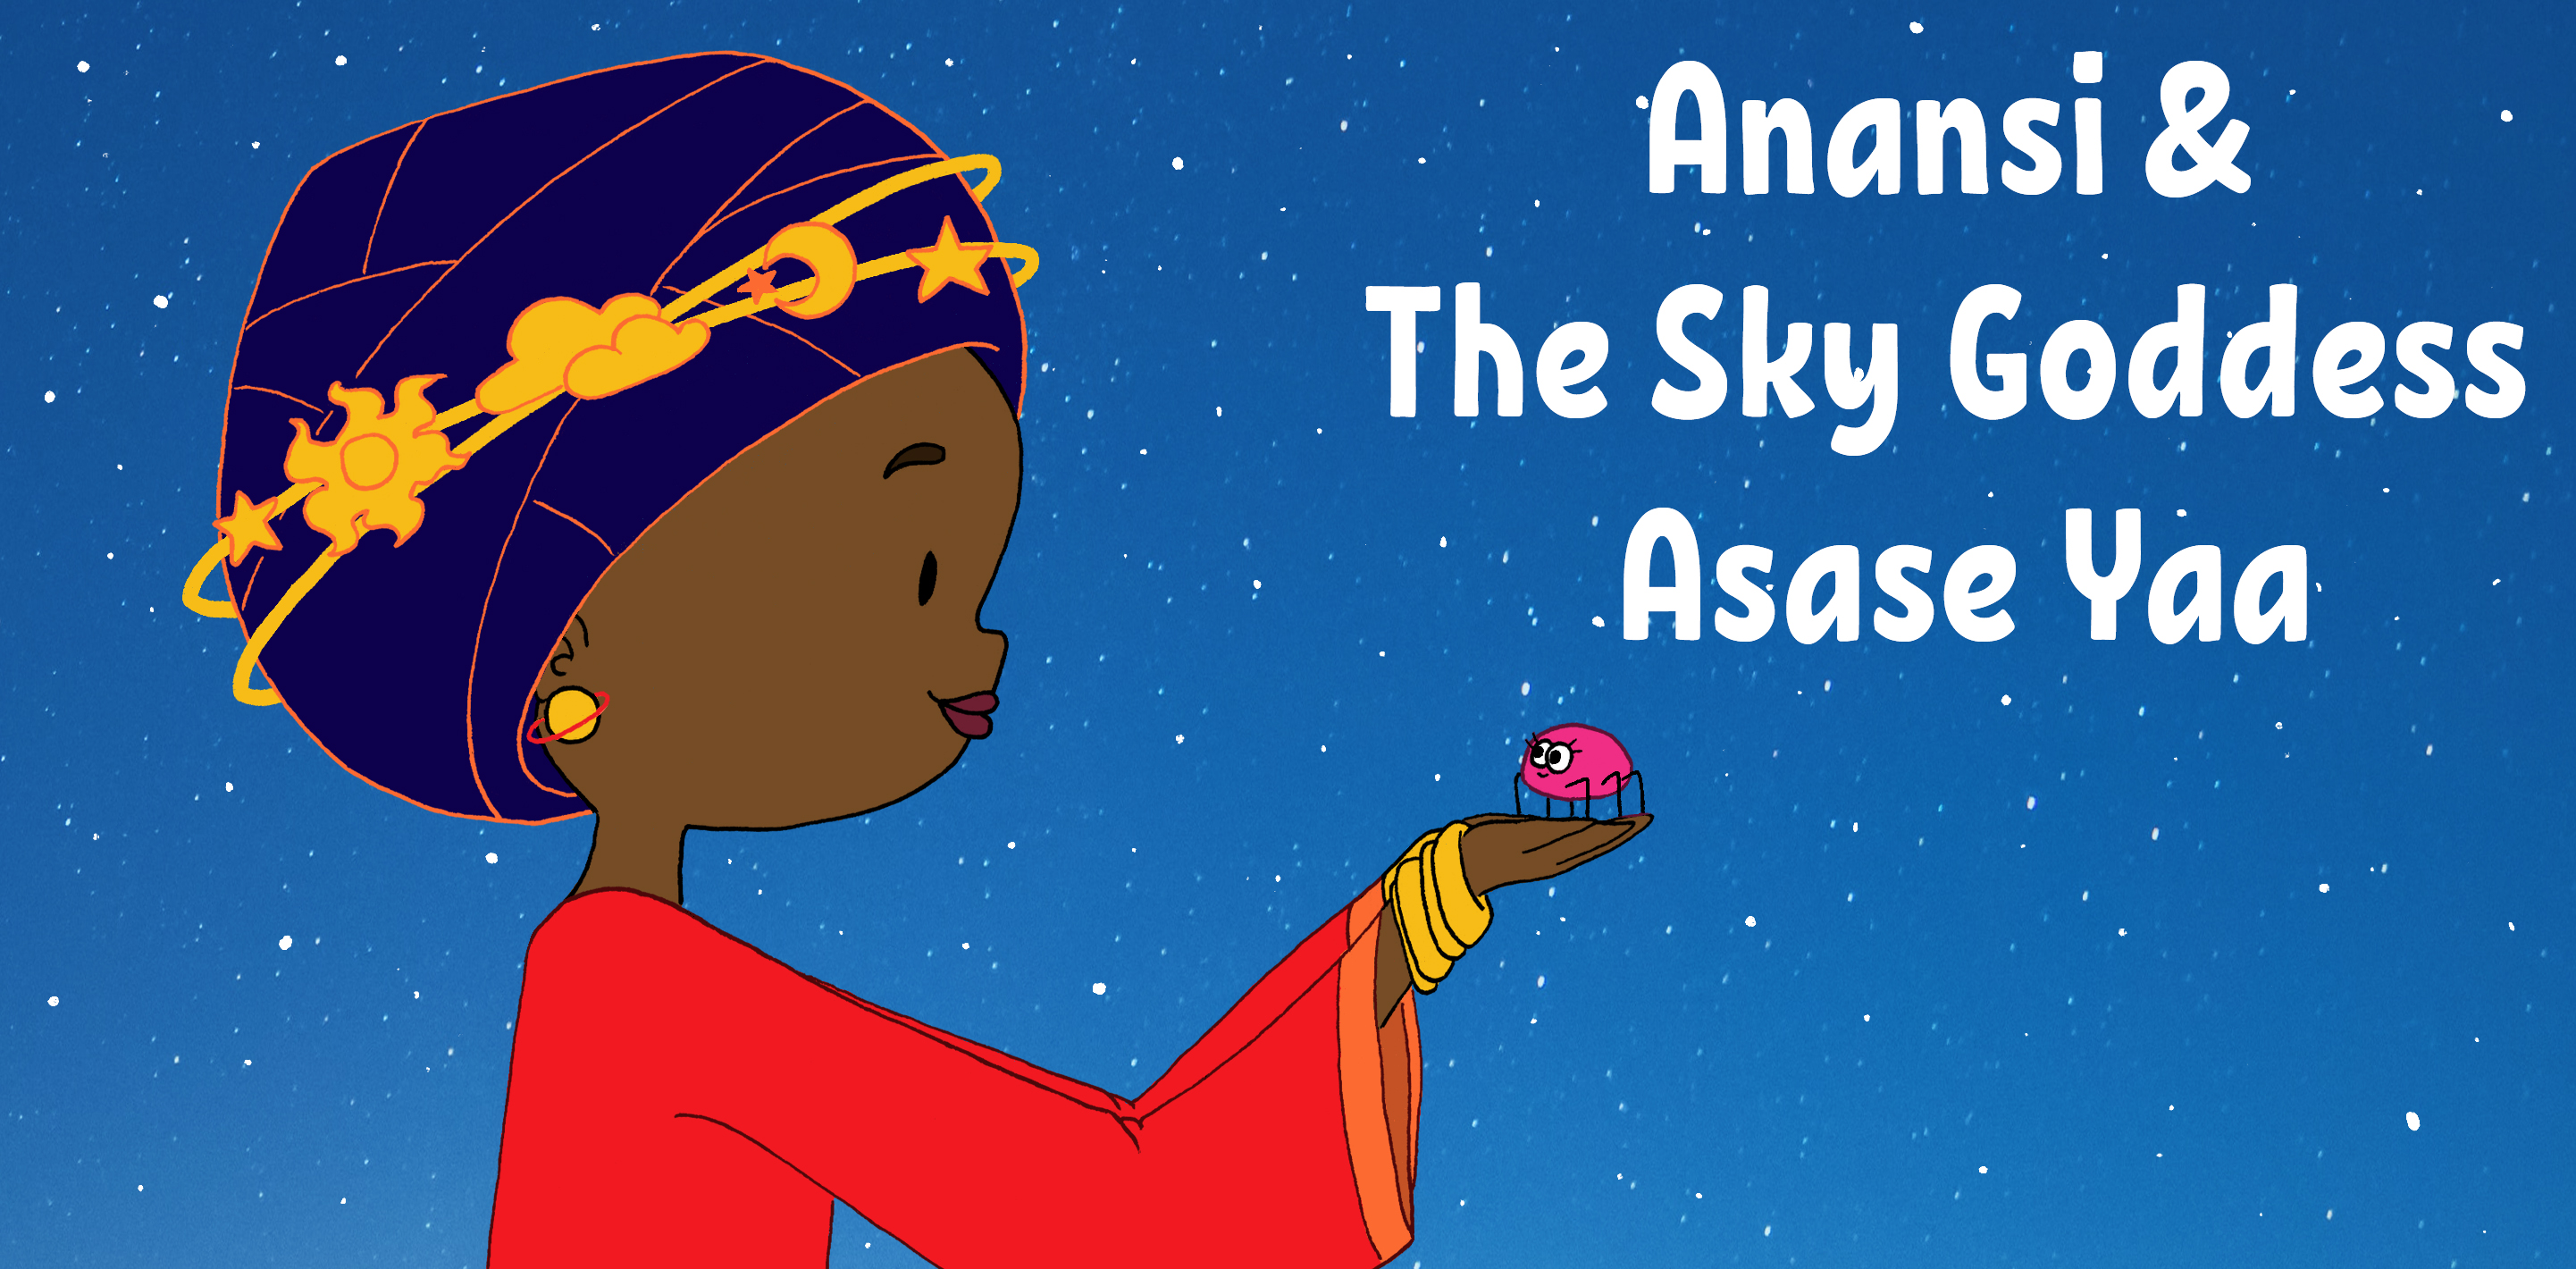 Anansi and the Sky Goddess Asase Yaa by Bleu Beckford-Burrell